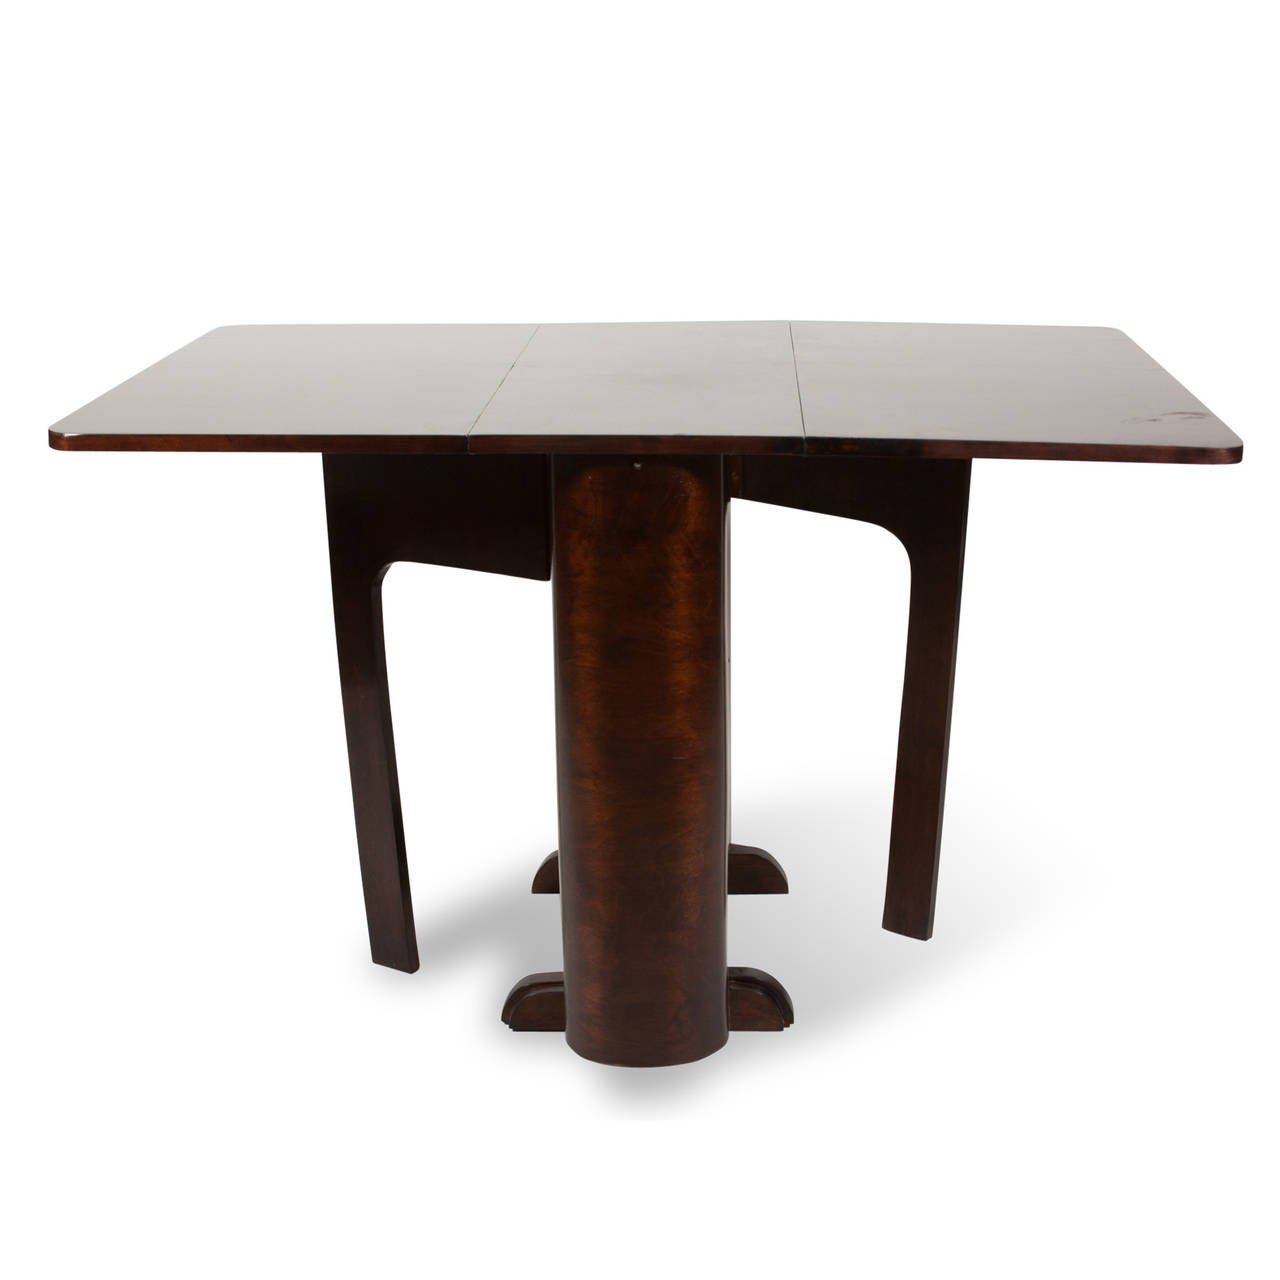 Double flip side gatefold dining table at 1stdibs - Side table dining room ...